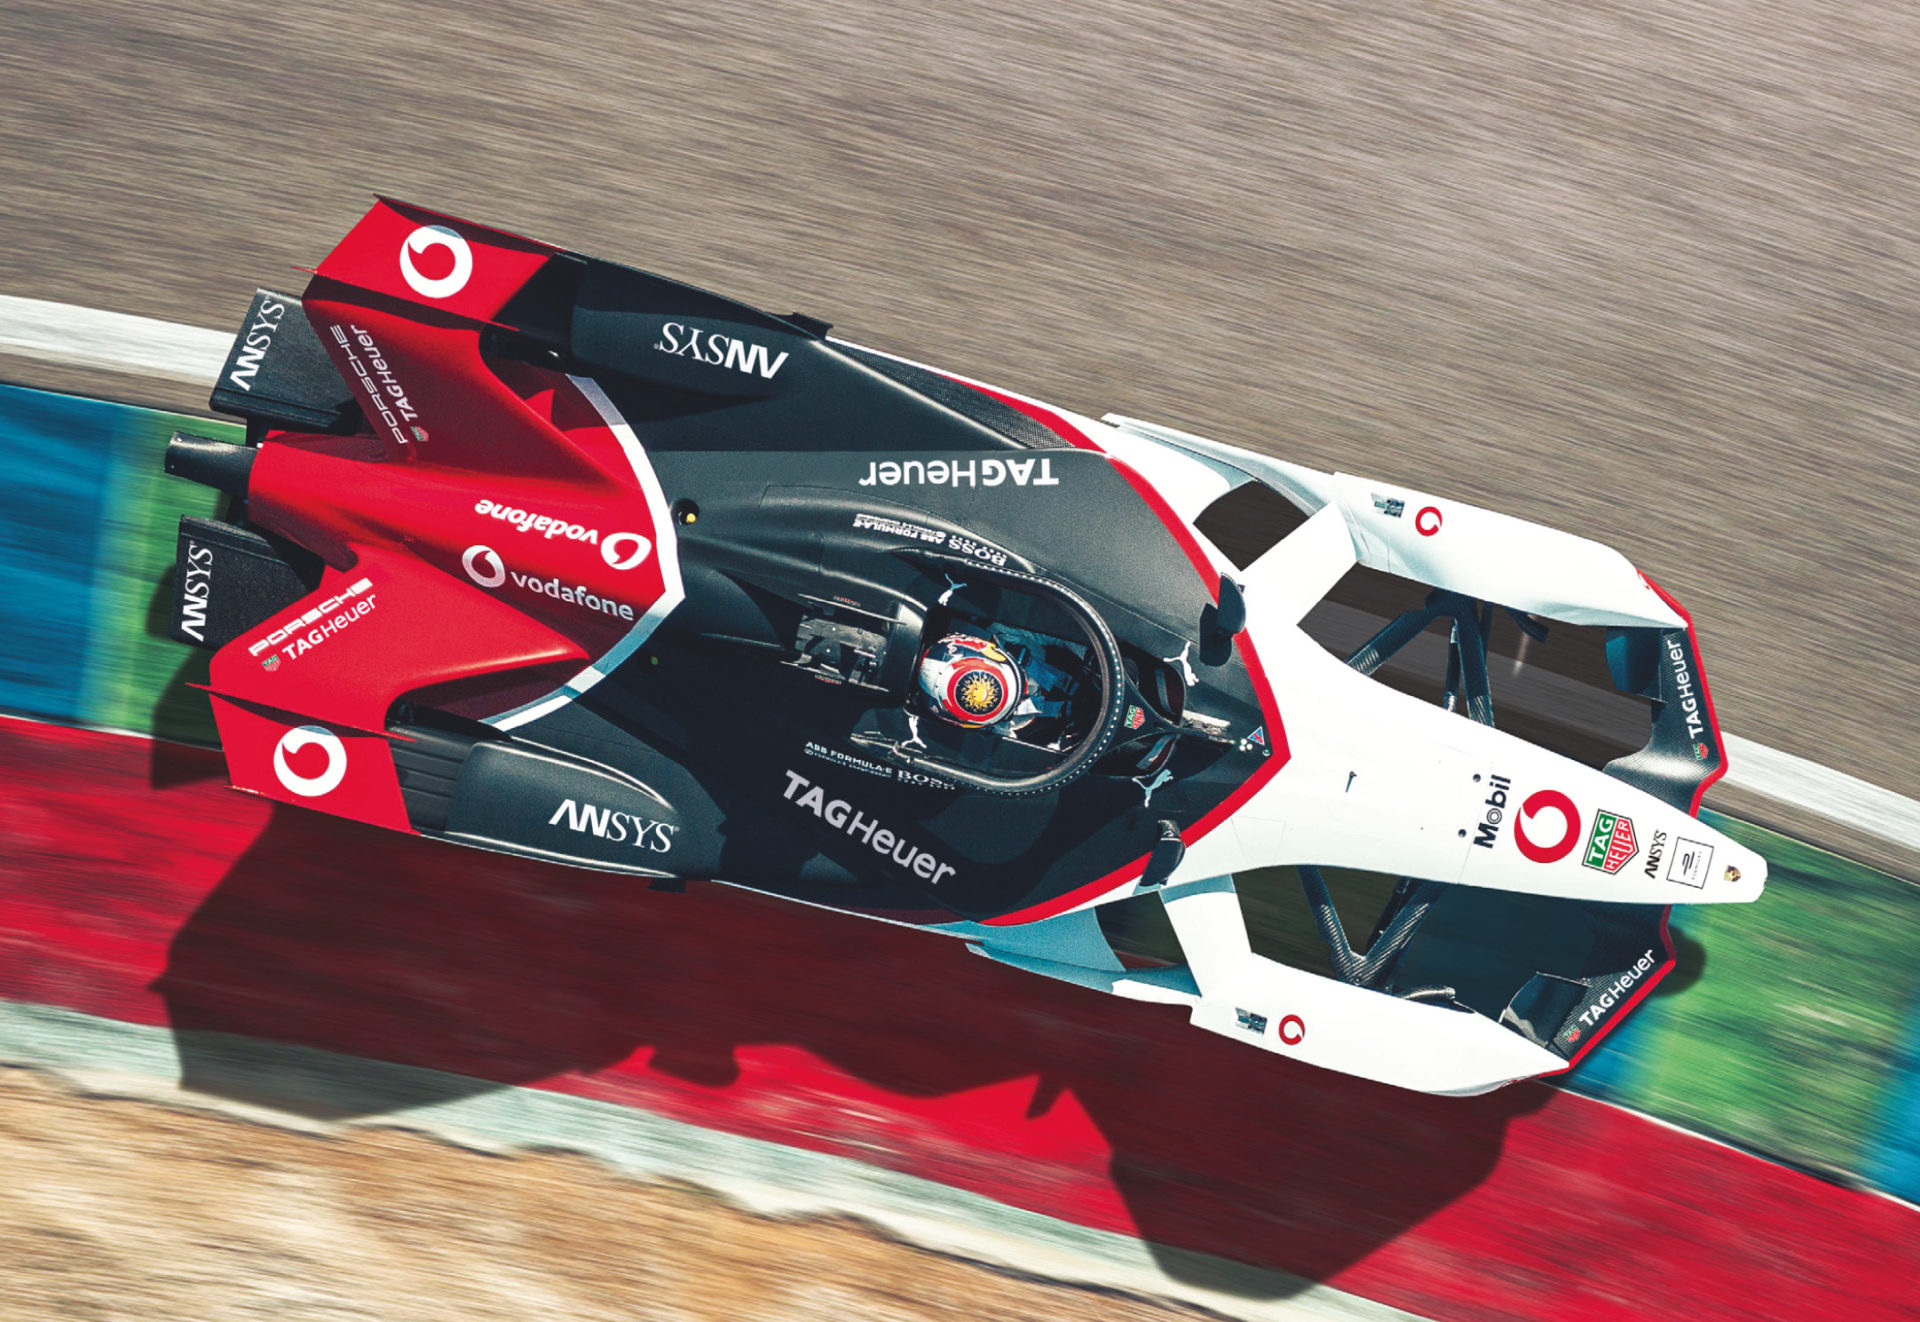 Porsche's Formula E entry has been done off its own back, rather than partnering with an existing team.